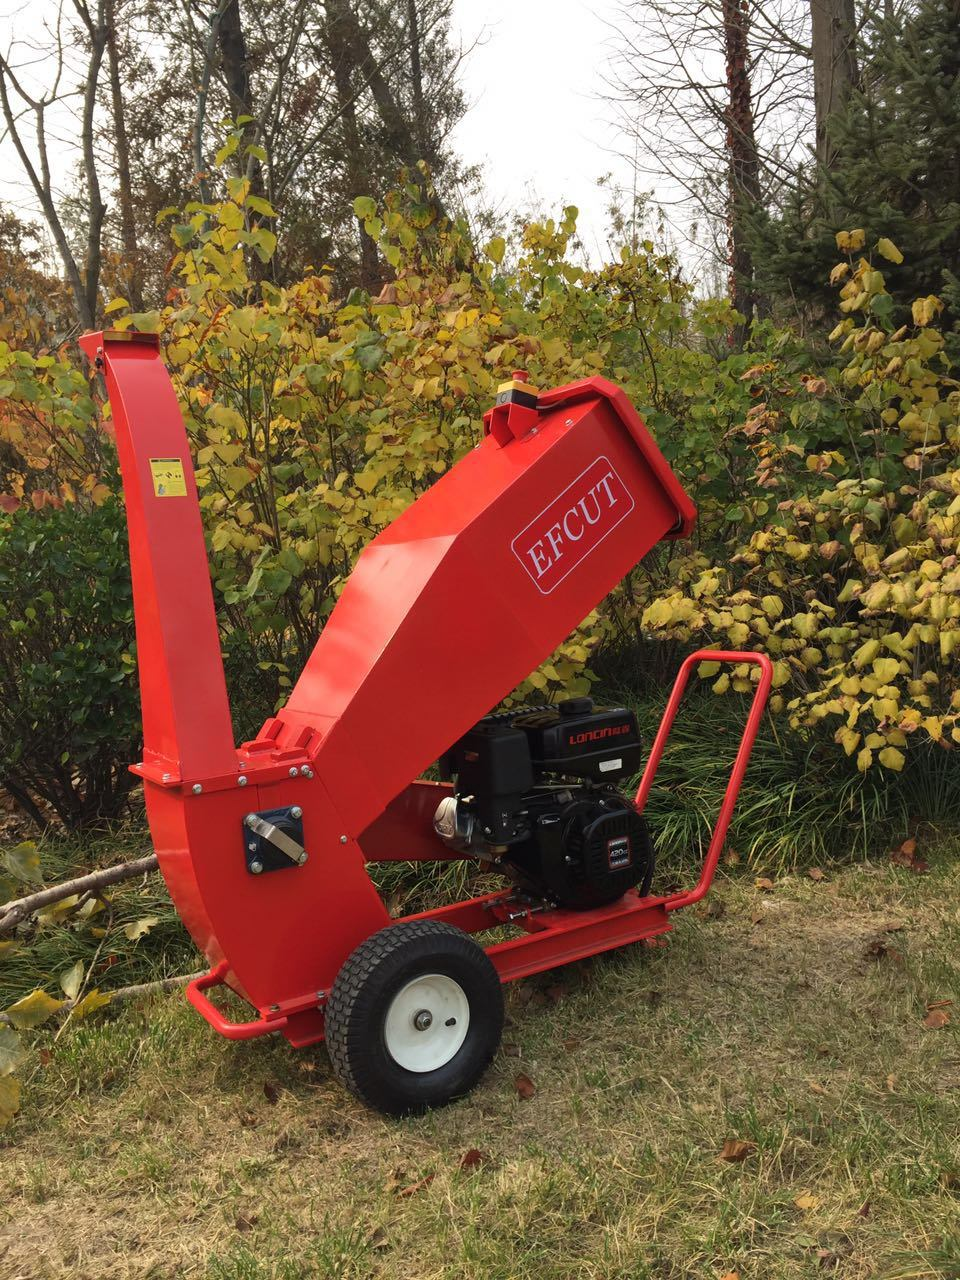 Chipper Drum Branch Shredder Wood Chip Gardening Tree Chipping Machine